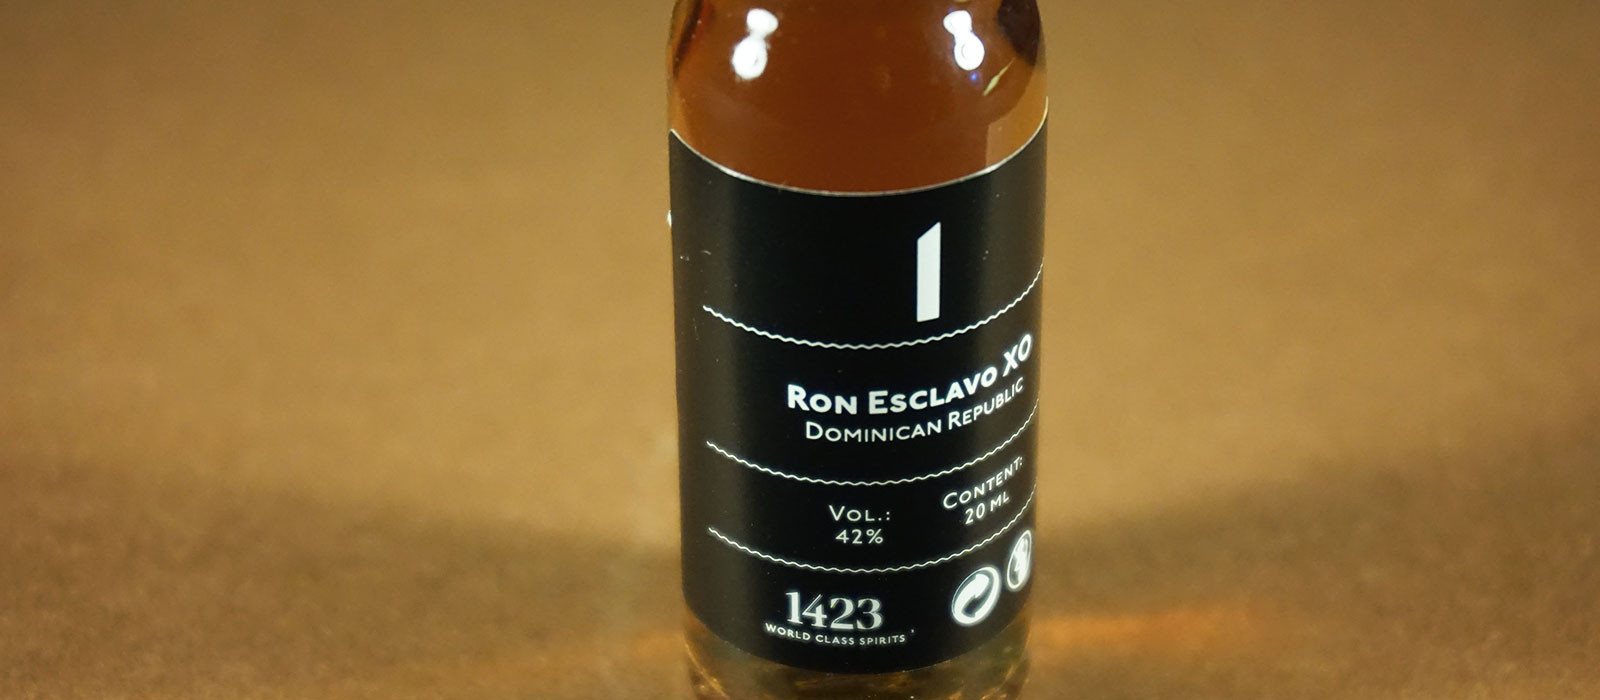 24 Days of Rum 2017: Dag 1 – Ron Esclavo XO